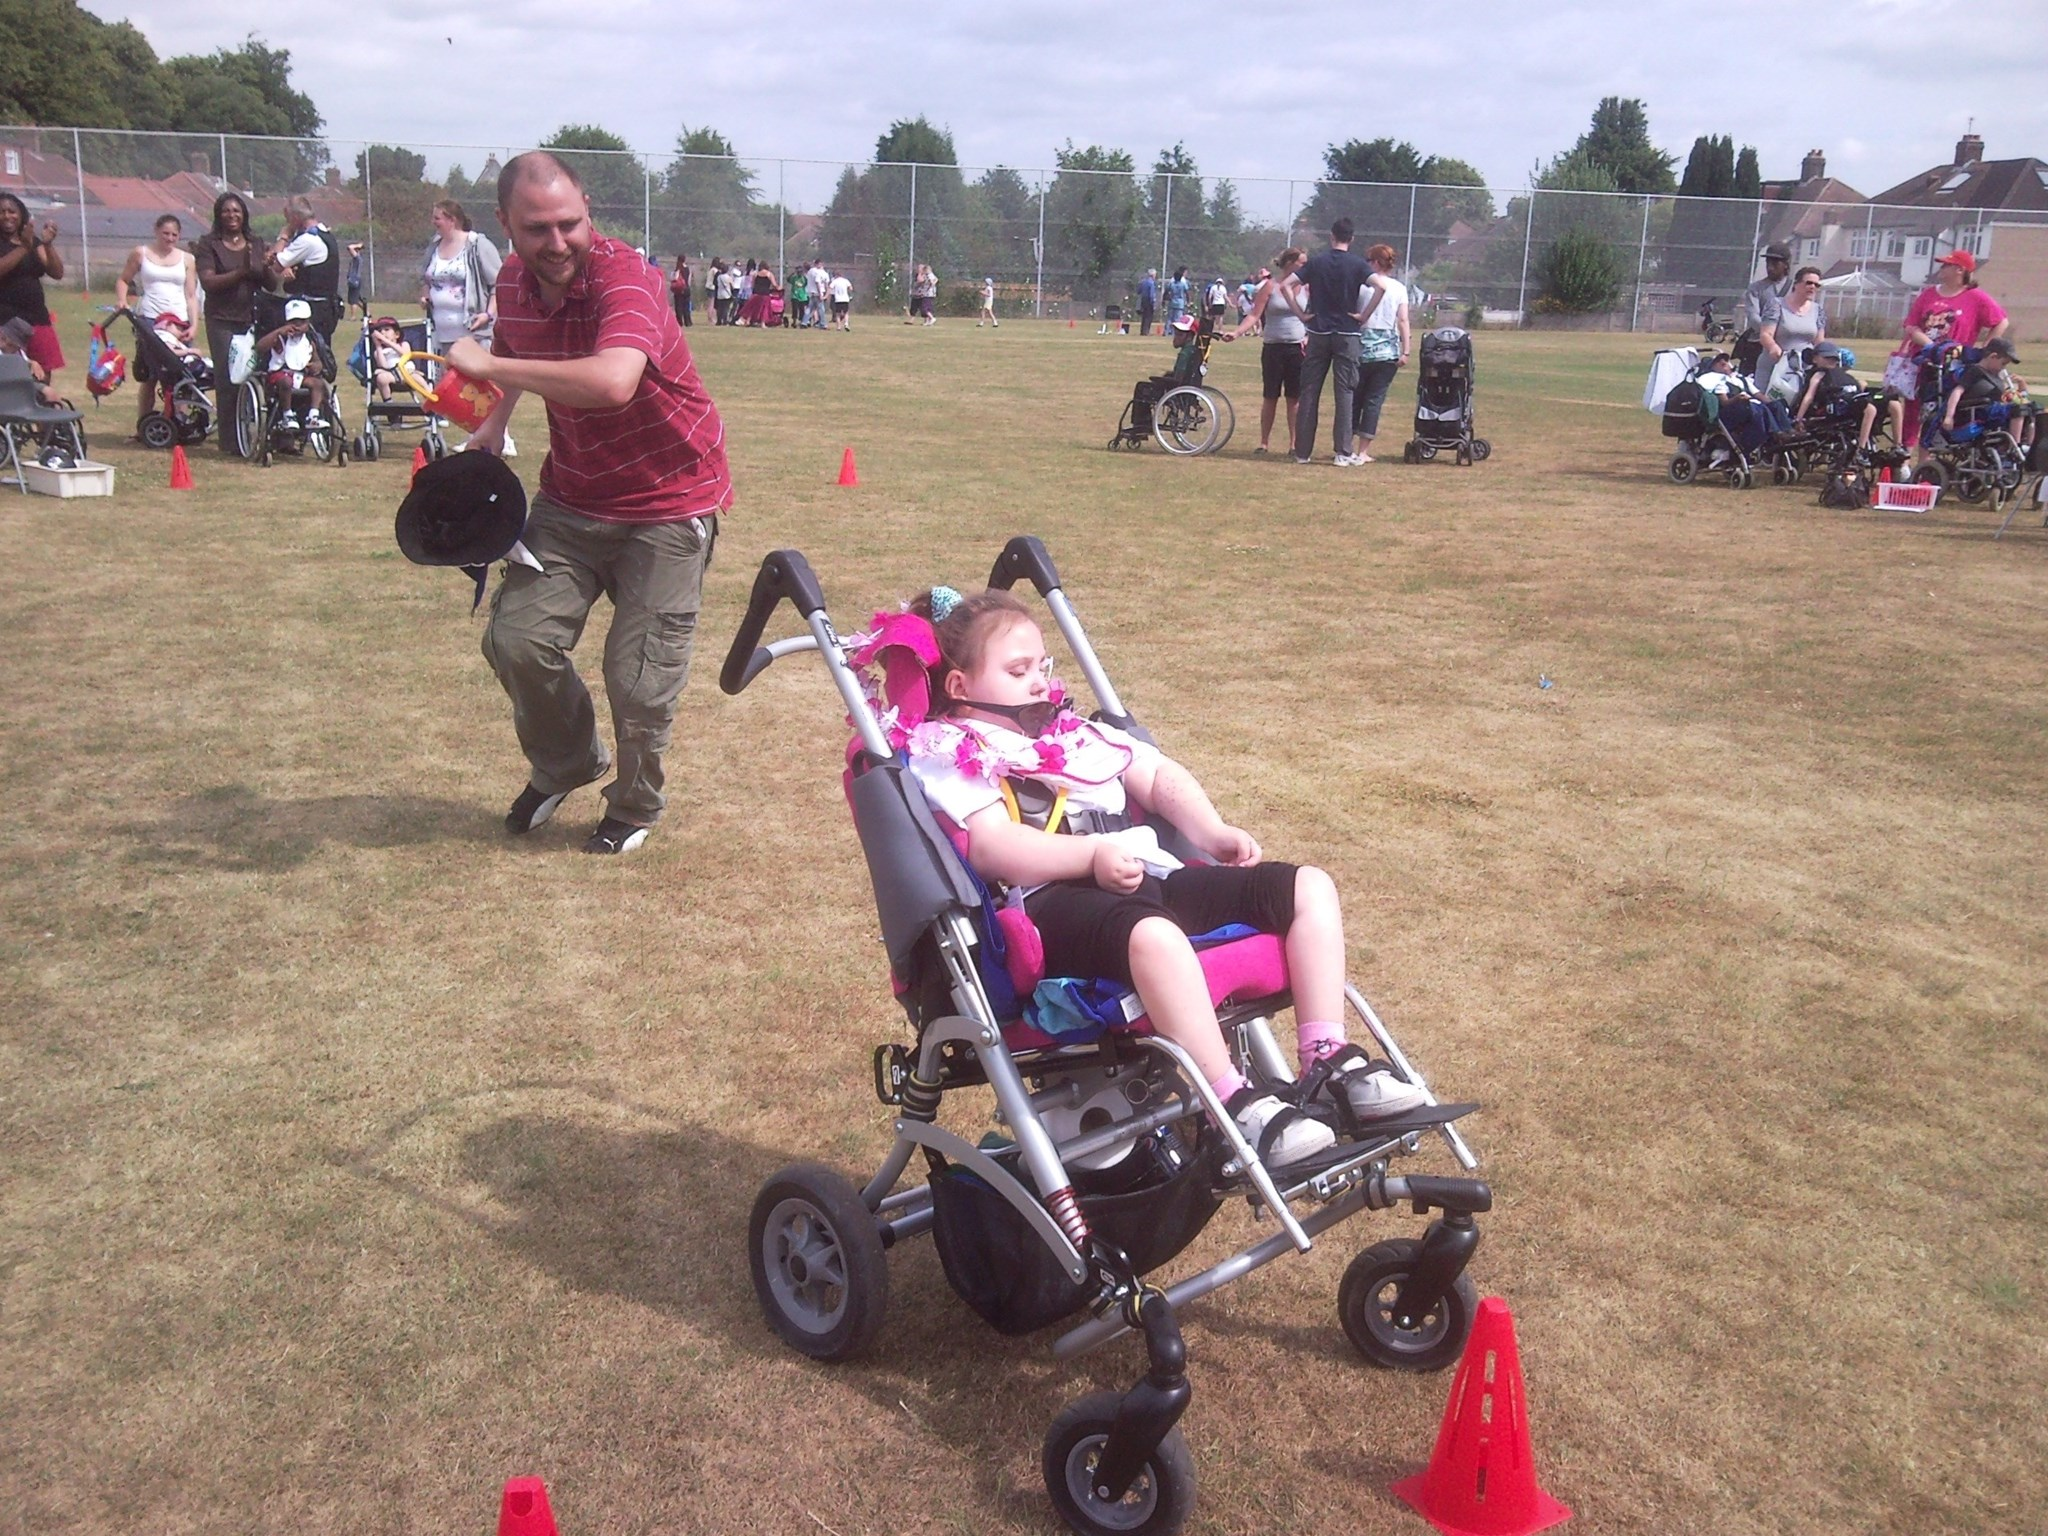 Jasmines sports day, shes so fast shes left Dave behind!